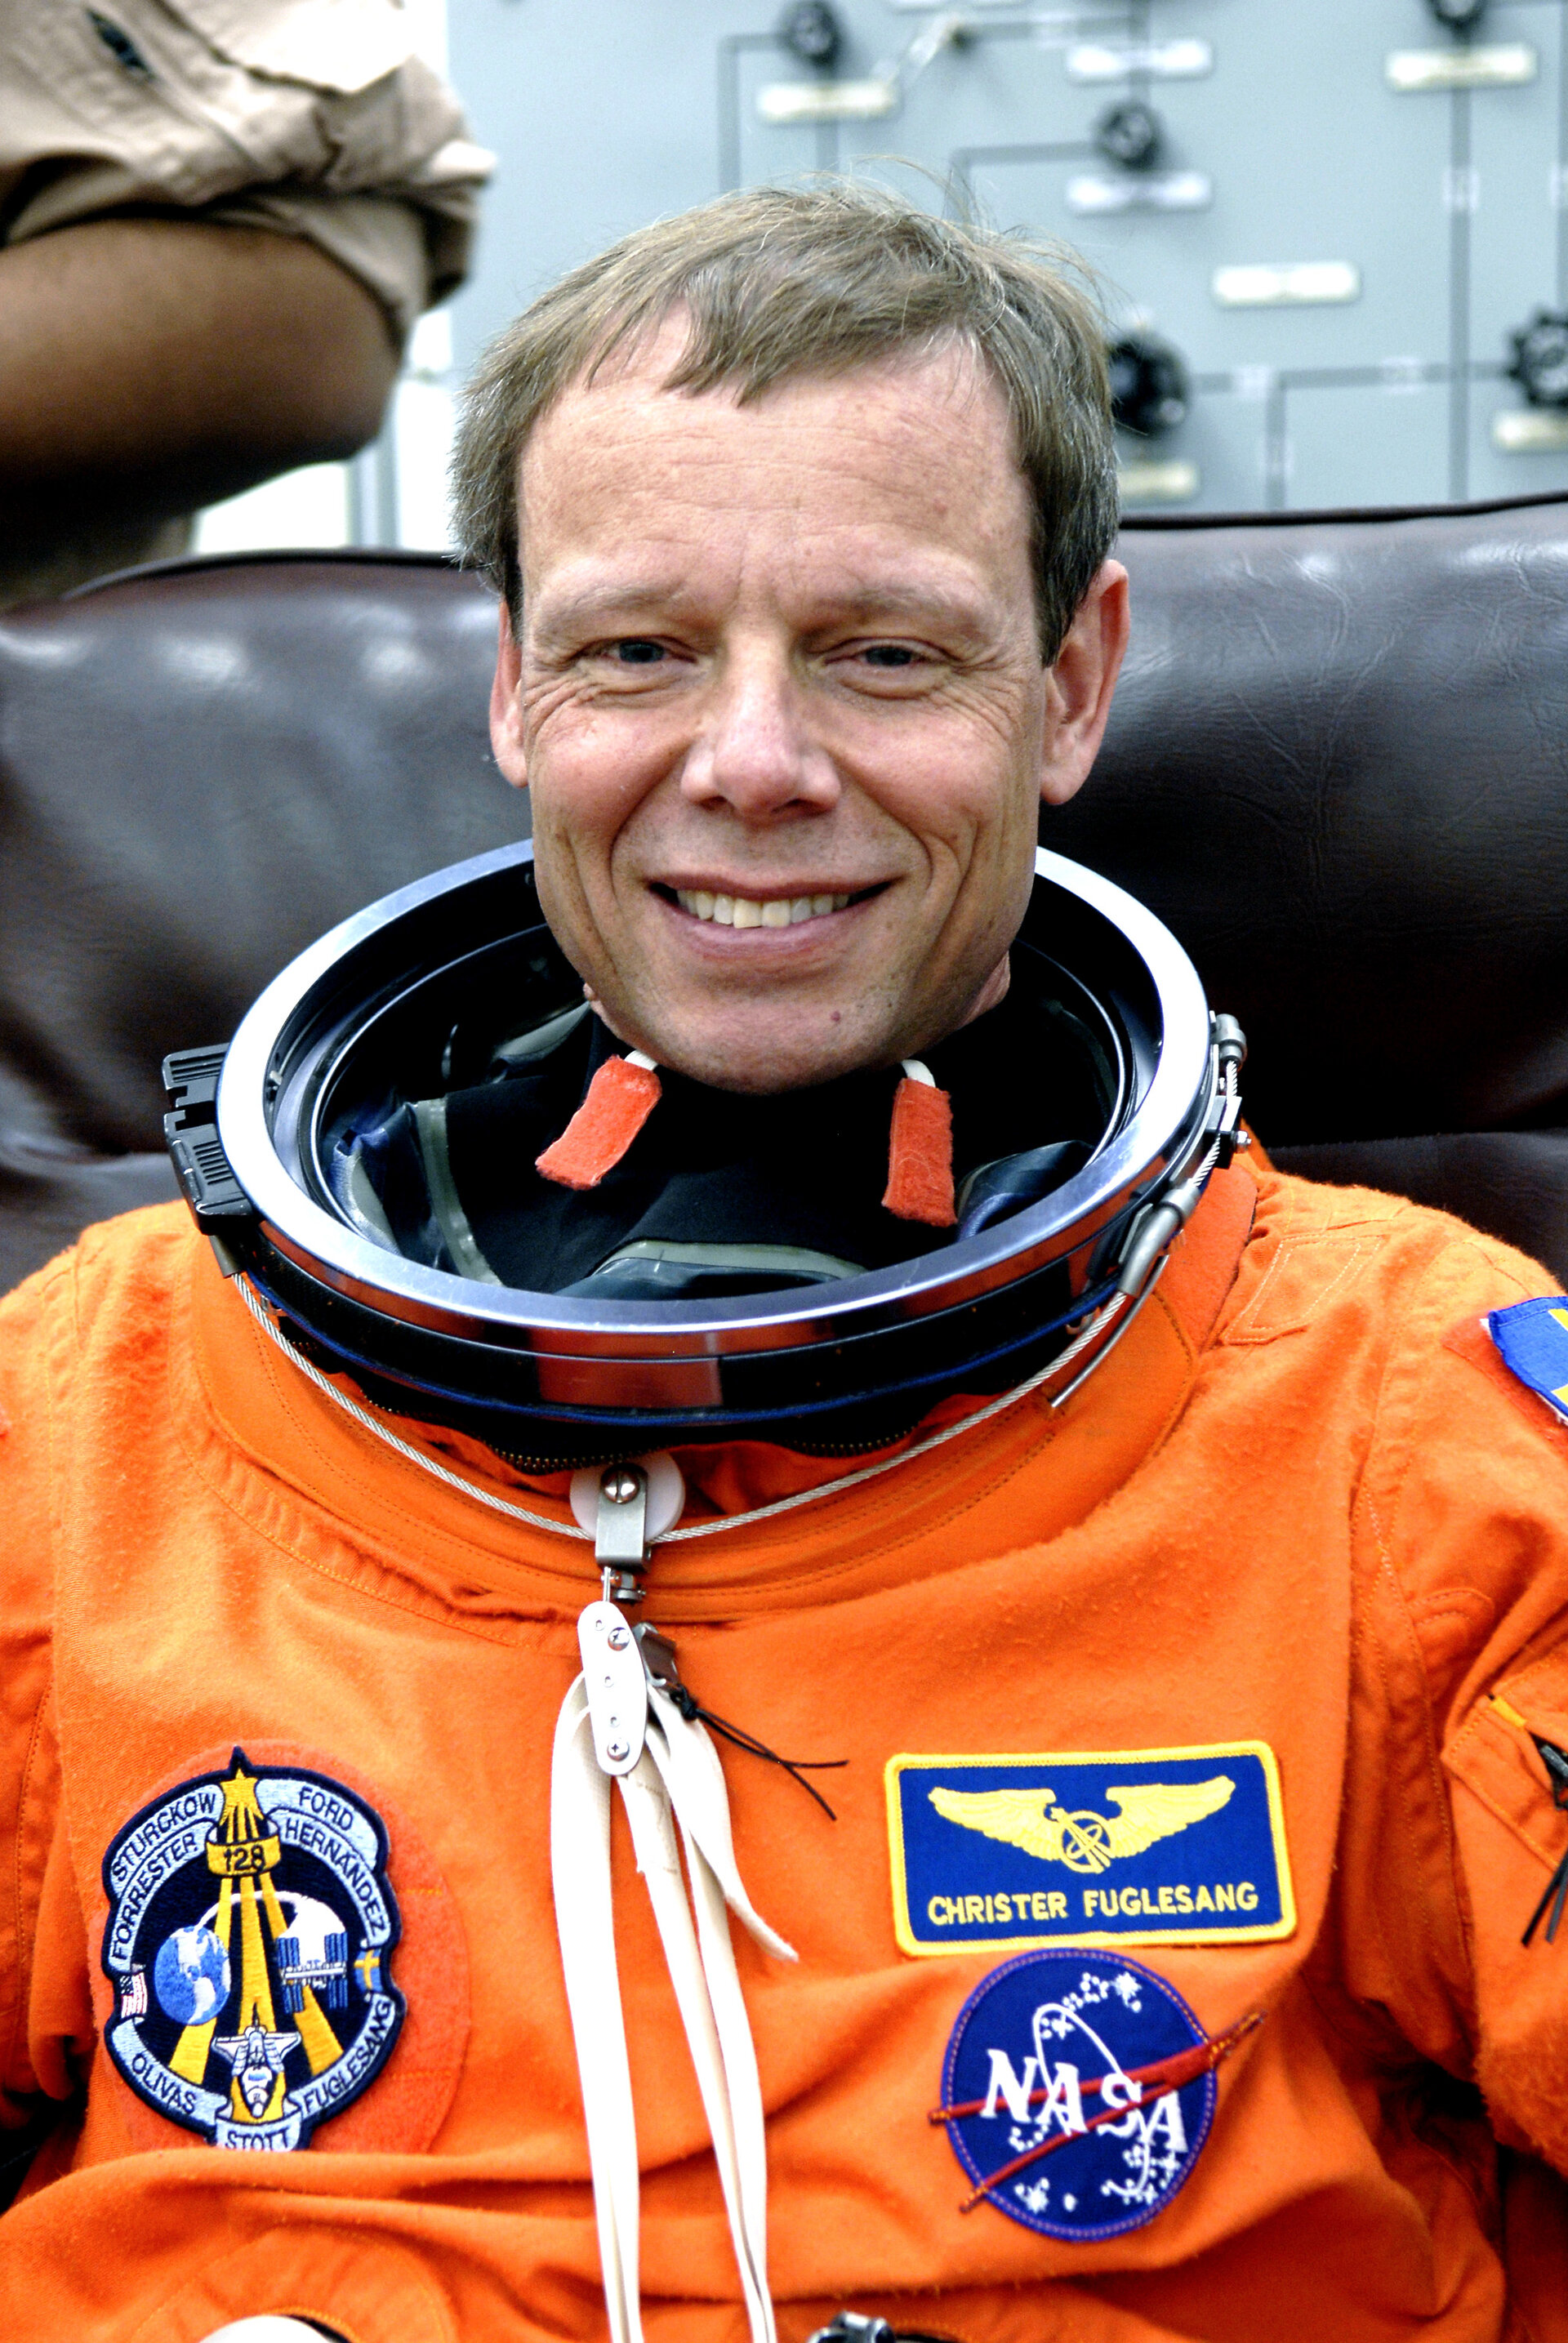 Christer Fuglesang's second spaceflight